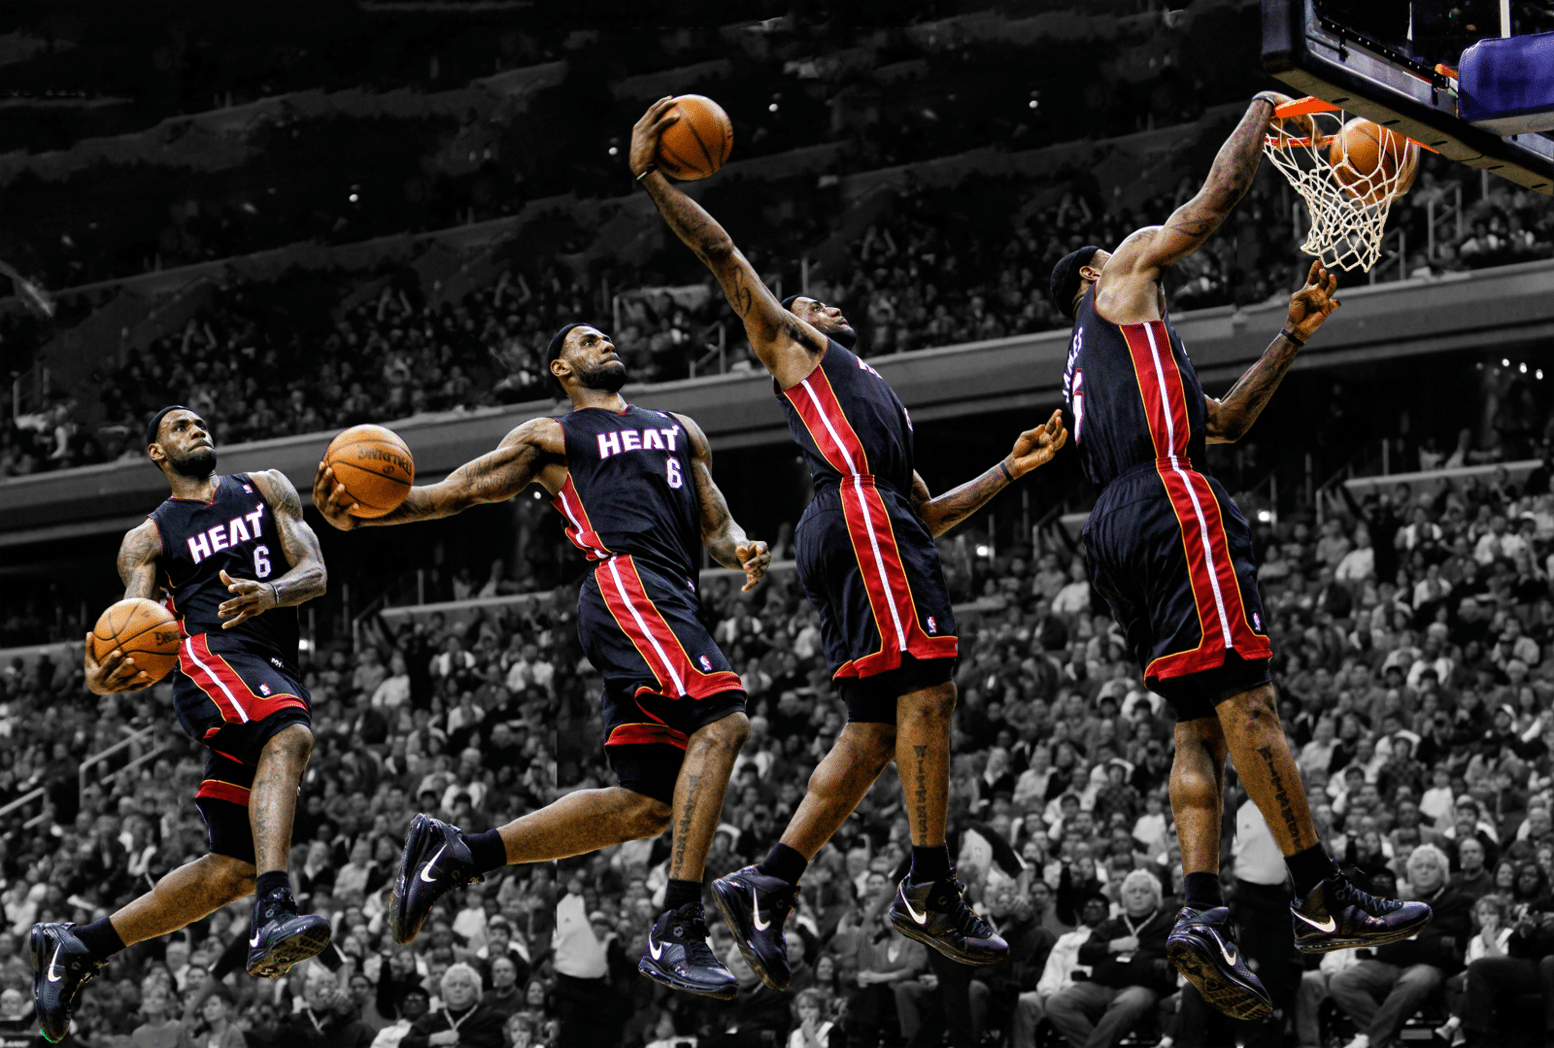 Lebron James Dunk: The beauty and balance of the game